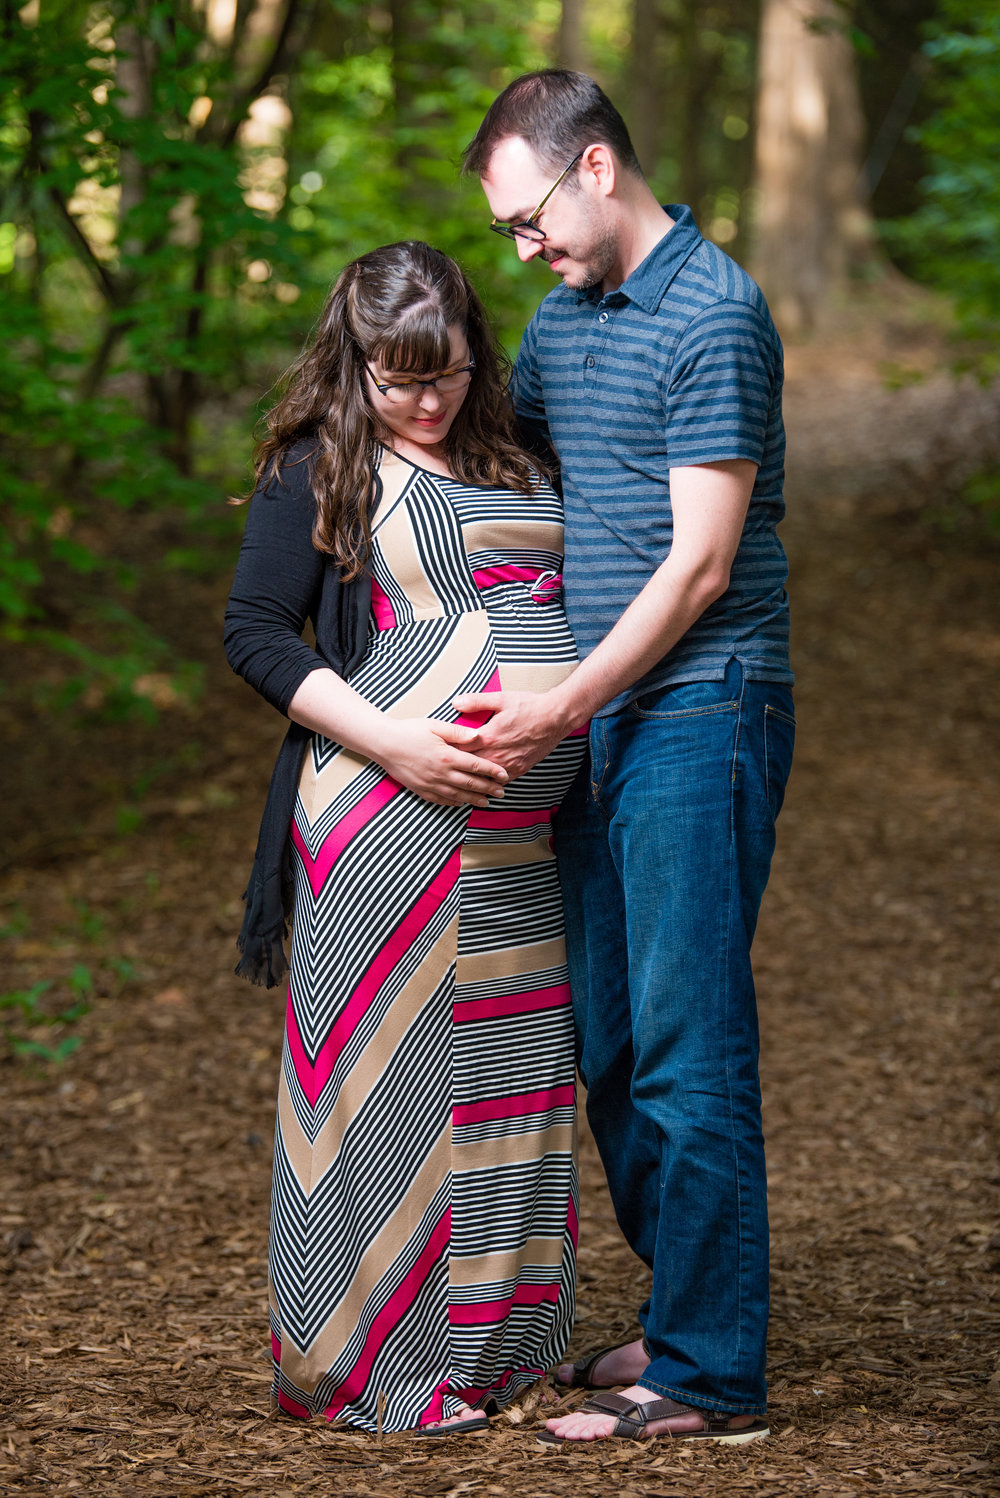 2018_June_23-06_23_2018_Ben_Anna_Maternity-48842-Edit.jpg